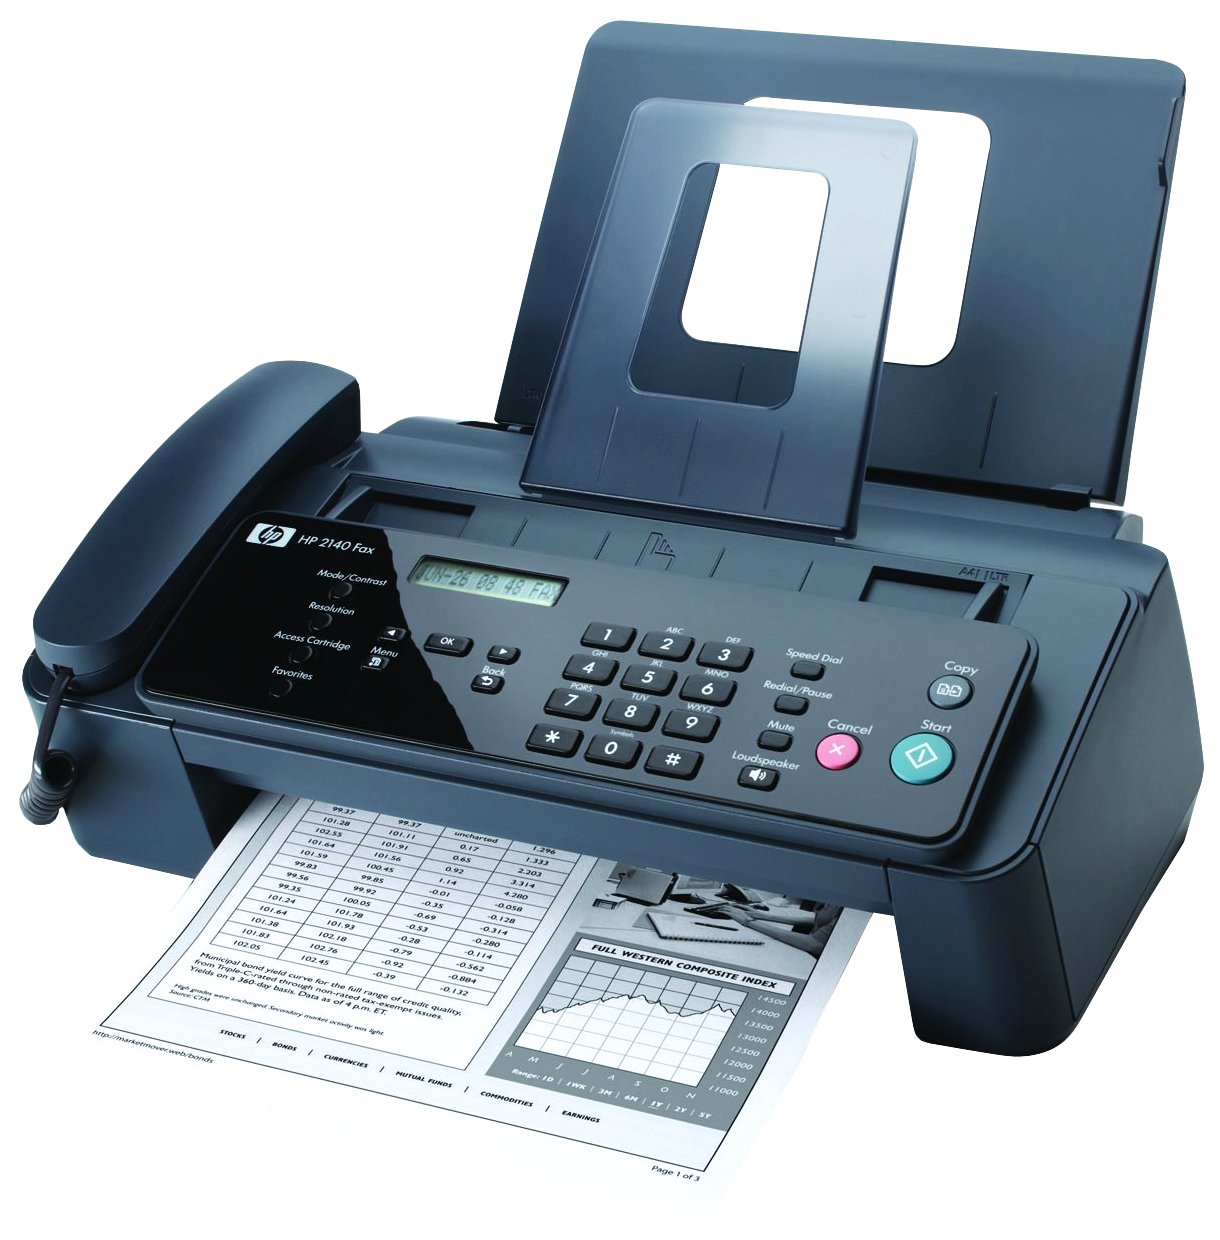 Fax Machine PNG Image.